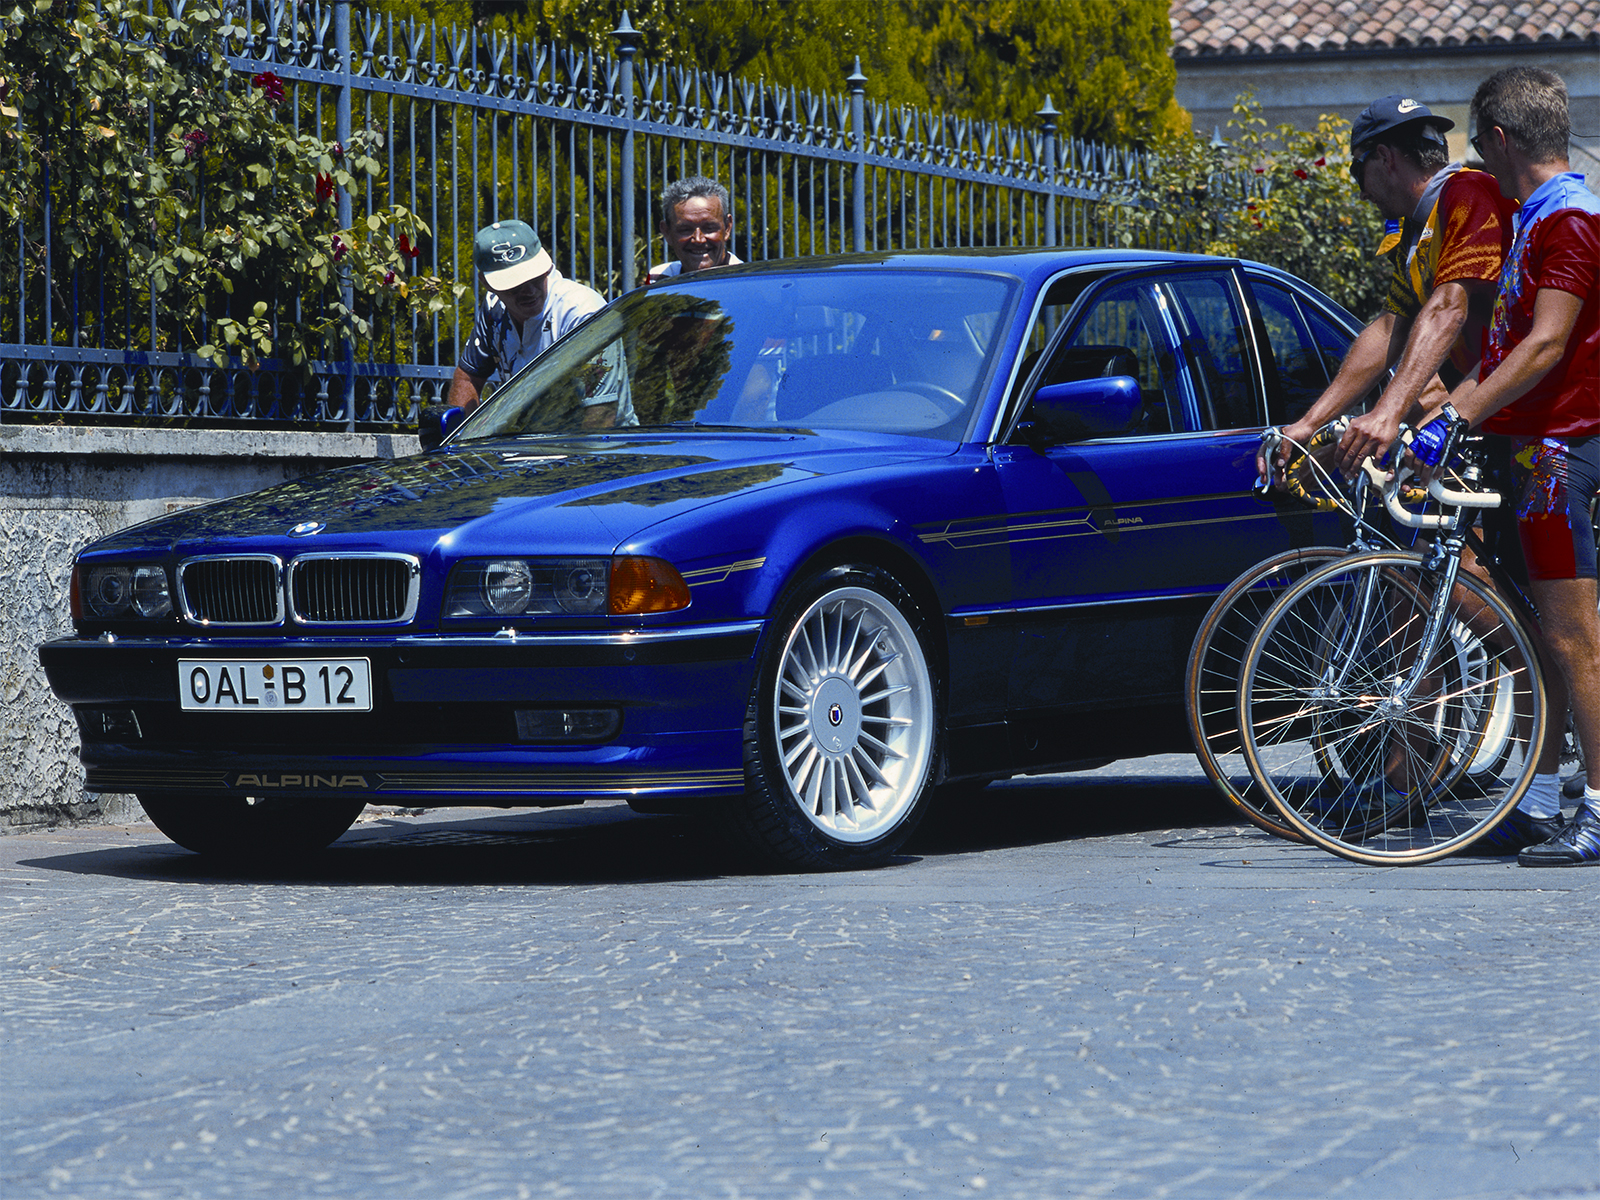 Bmw 7 series e38 alpina automobiles